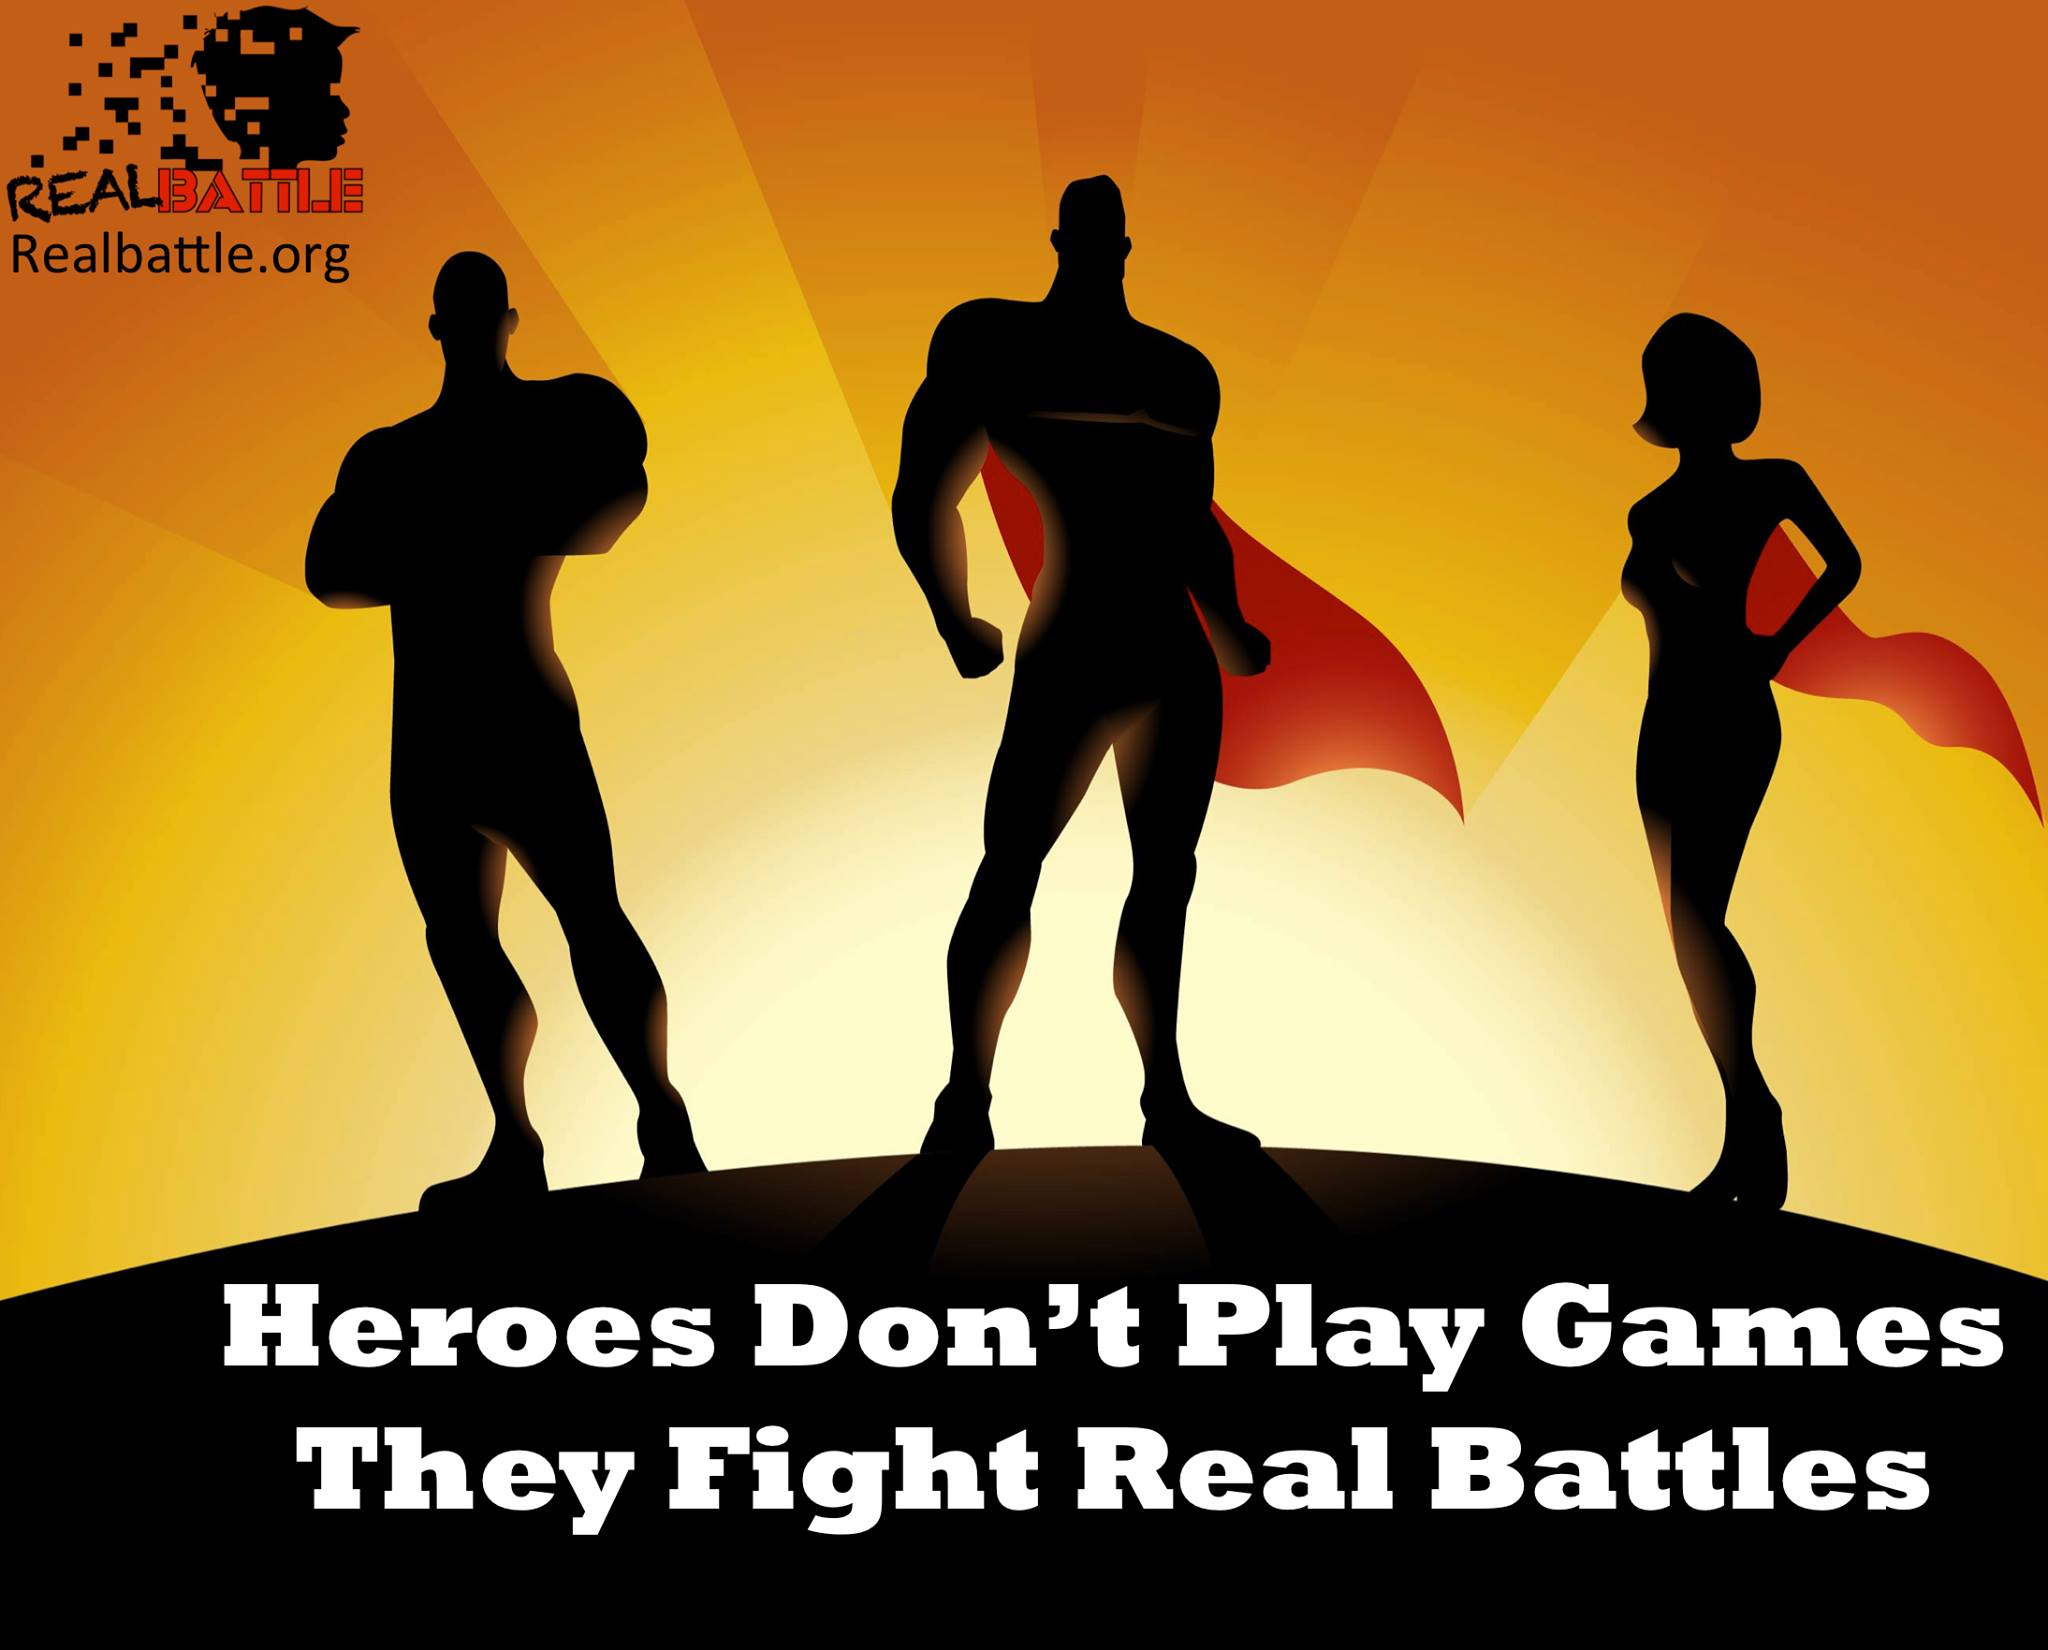 heroes-fight-real-battles.jpg